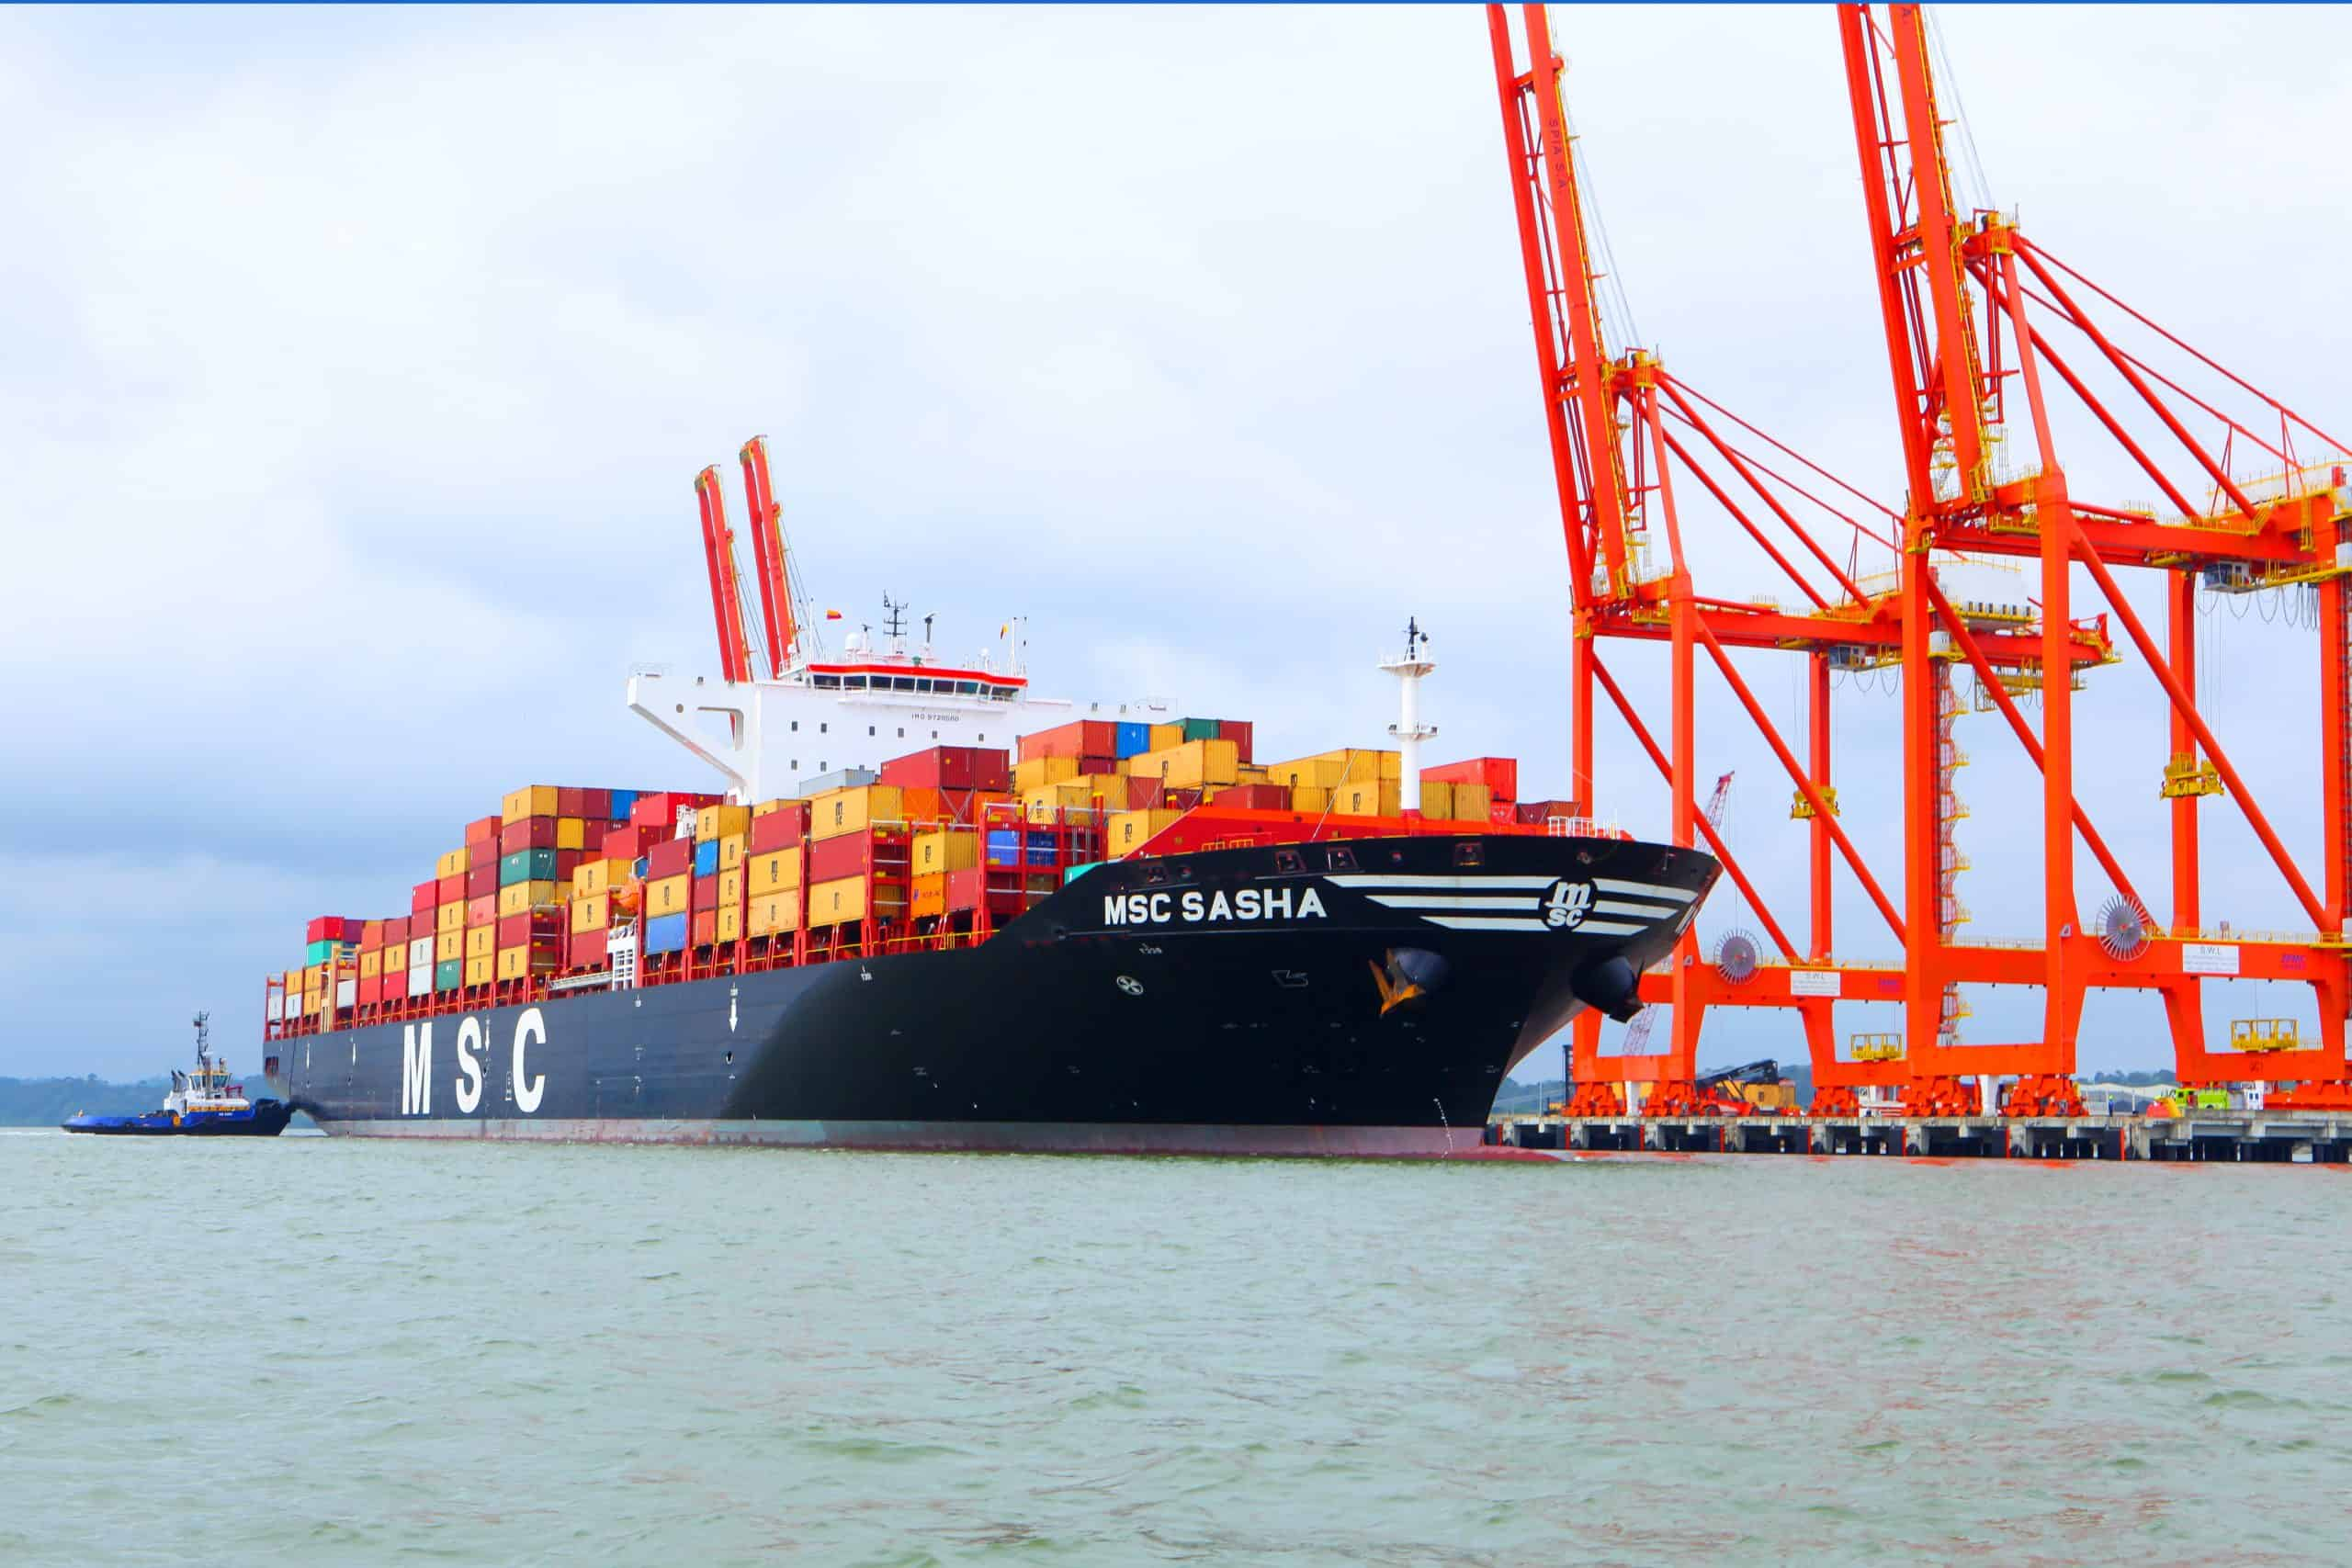 Double digit growth for ICTSI